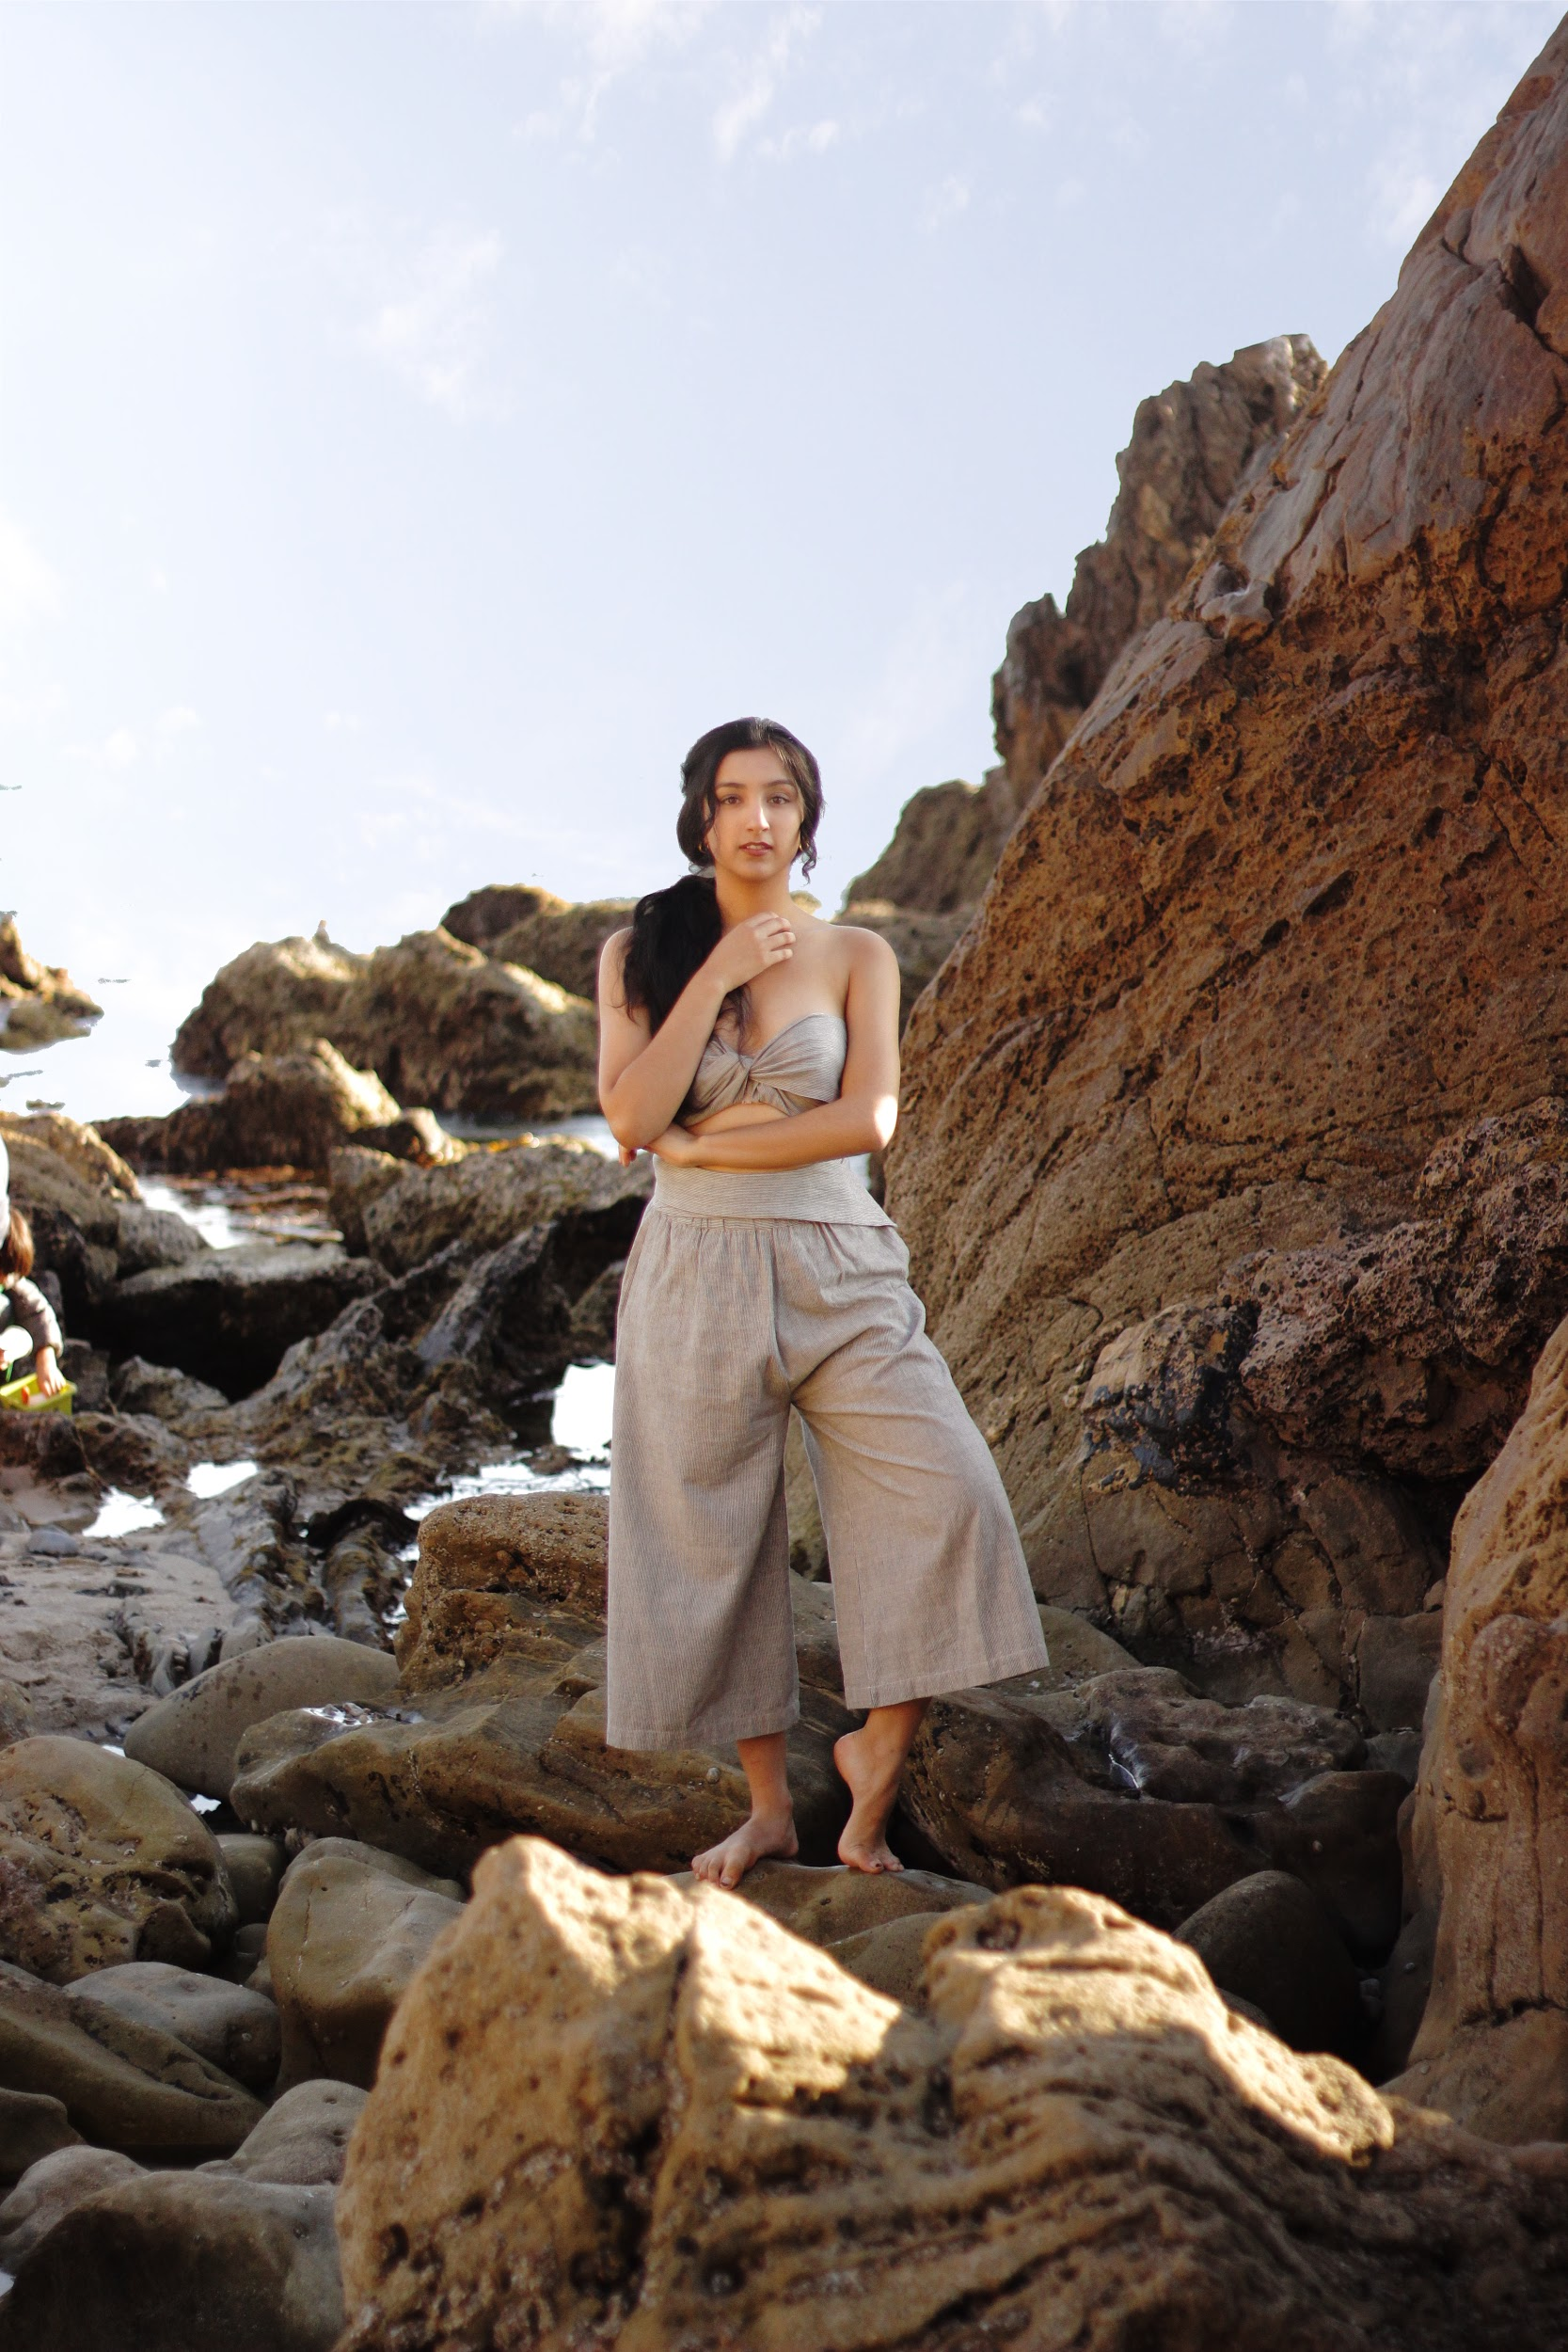 Sustainably made beach wear // A Week Of Ethical Outfits With Aditi Mayer on The Good Trade